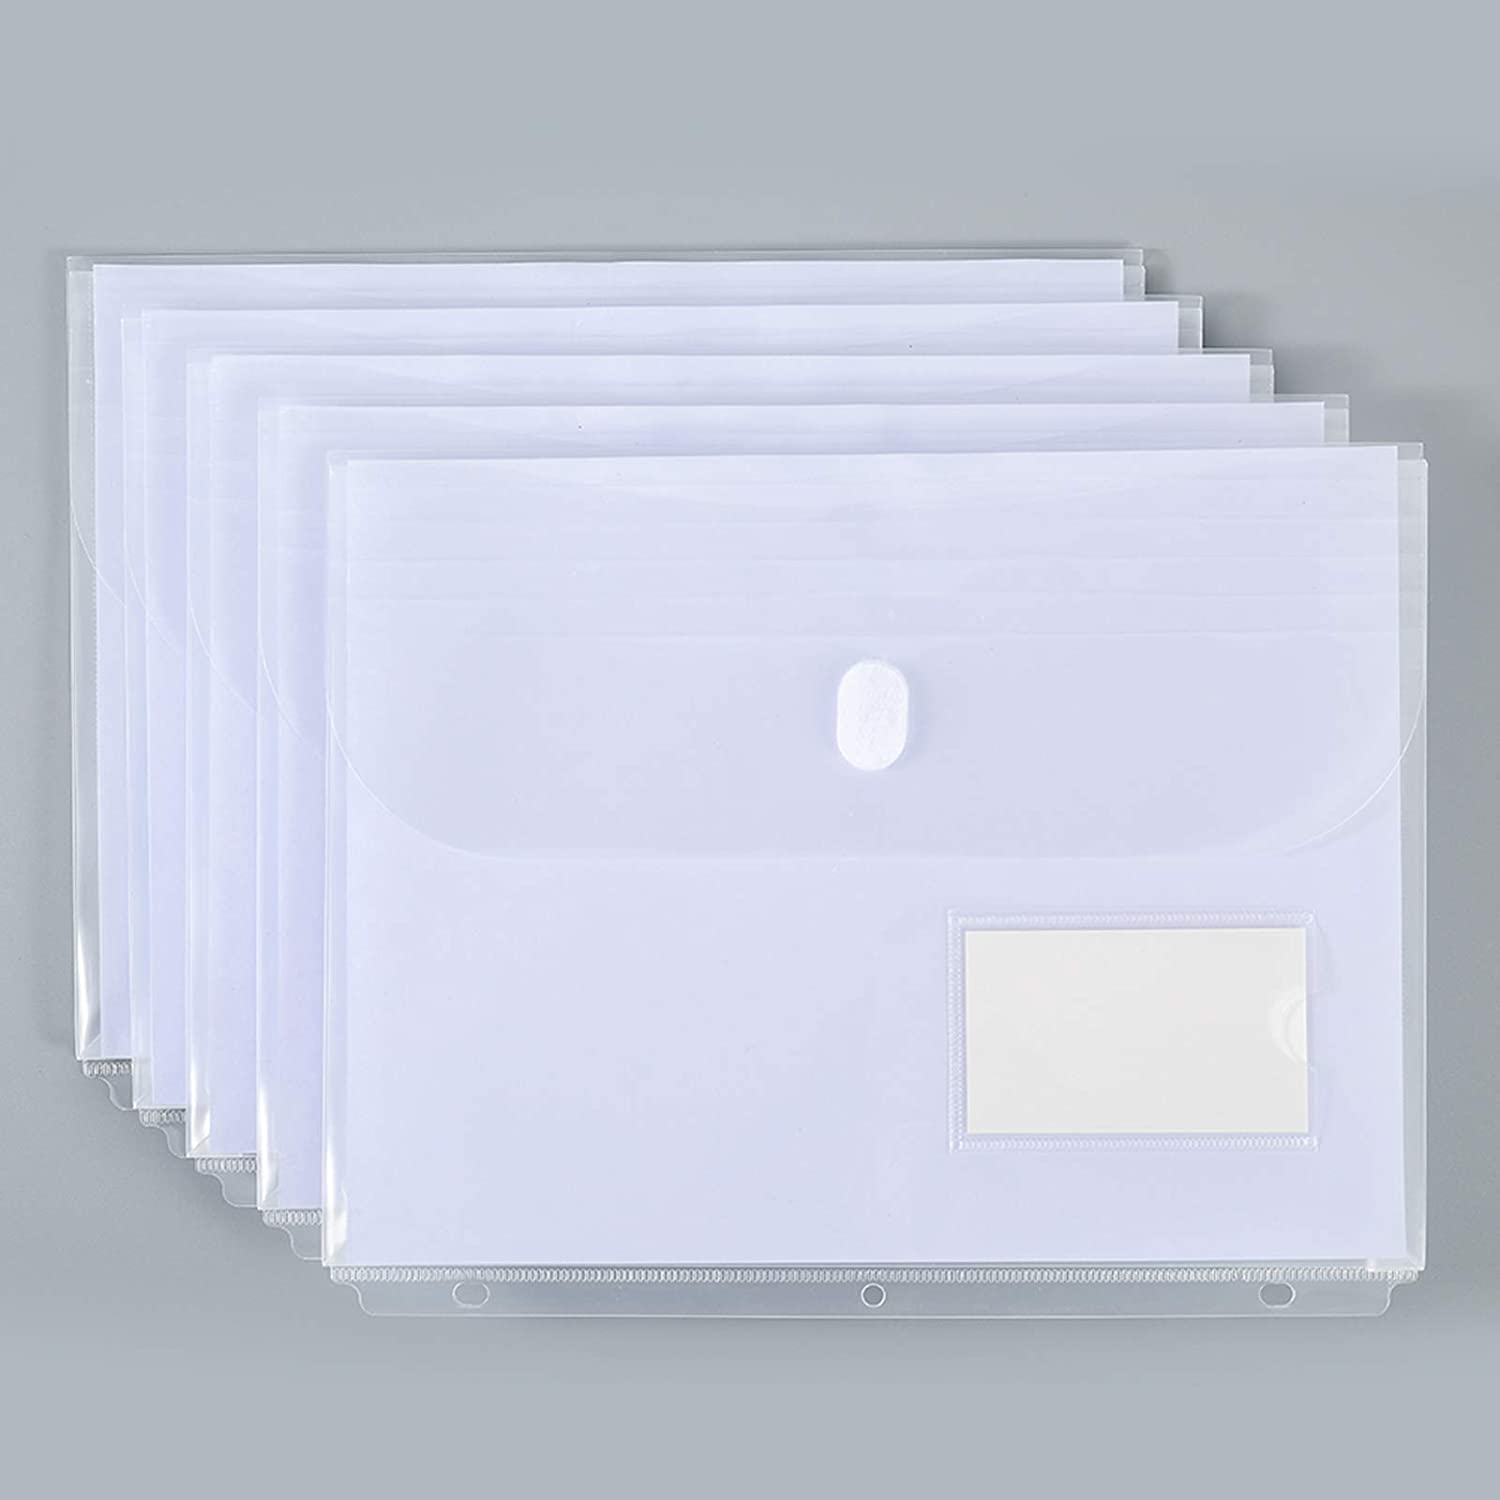 10 Pack Clear Poly Binder Pocket with 1-Inch Gusset, Side Loading,Letter Size, Pocket Folders Poly Envelopes Clear Document Folders for 3 Ring Binder with Label Pocket for School Home Office